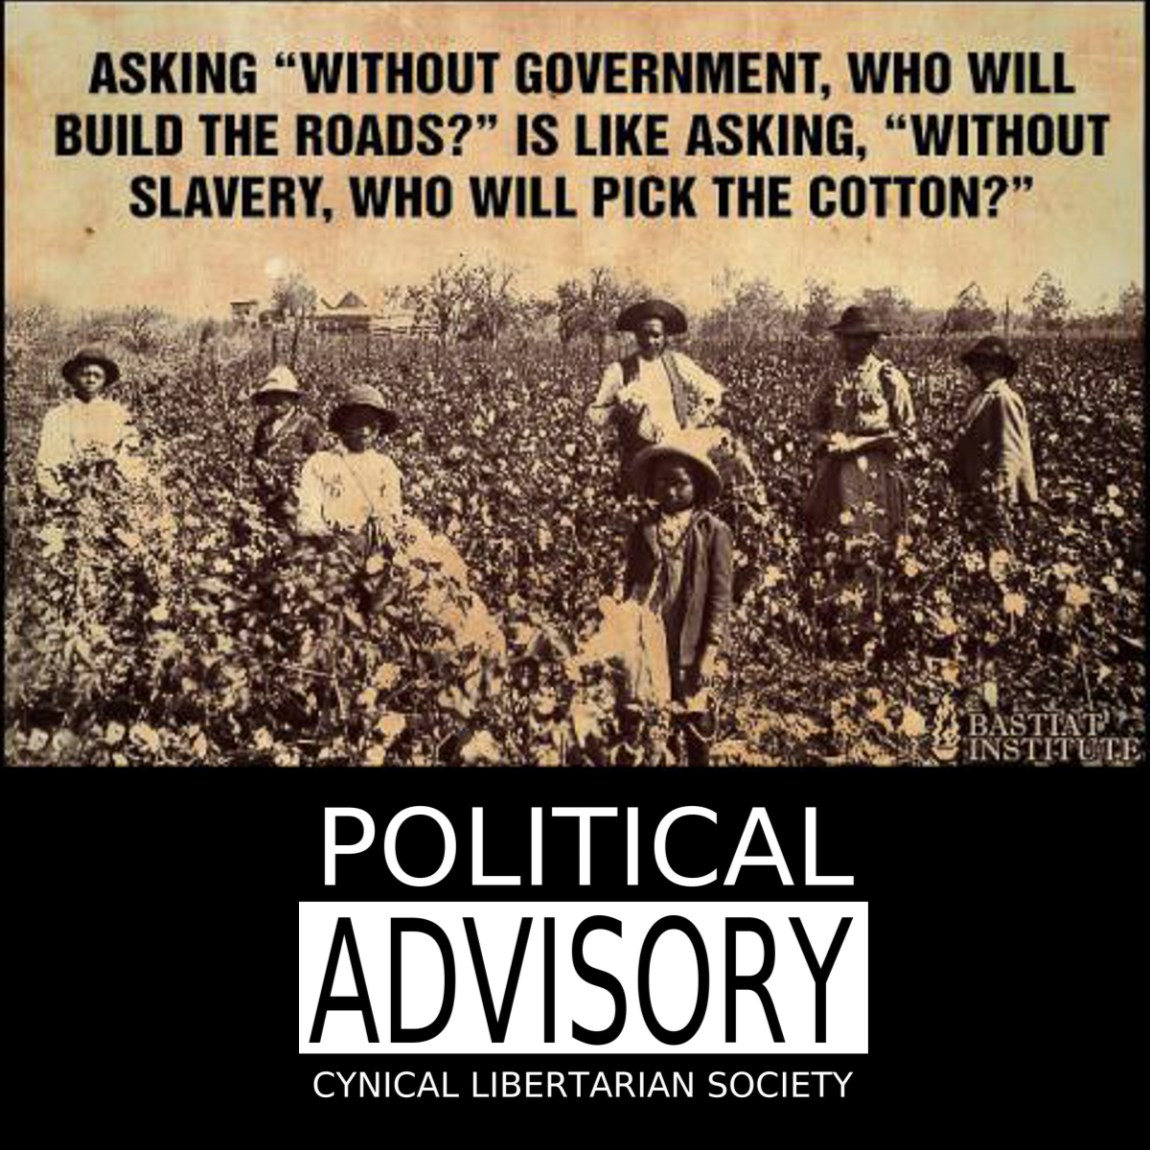 without slavery who will pick the cotton - cls